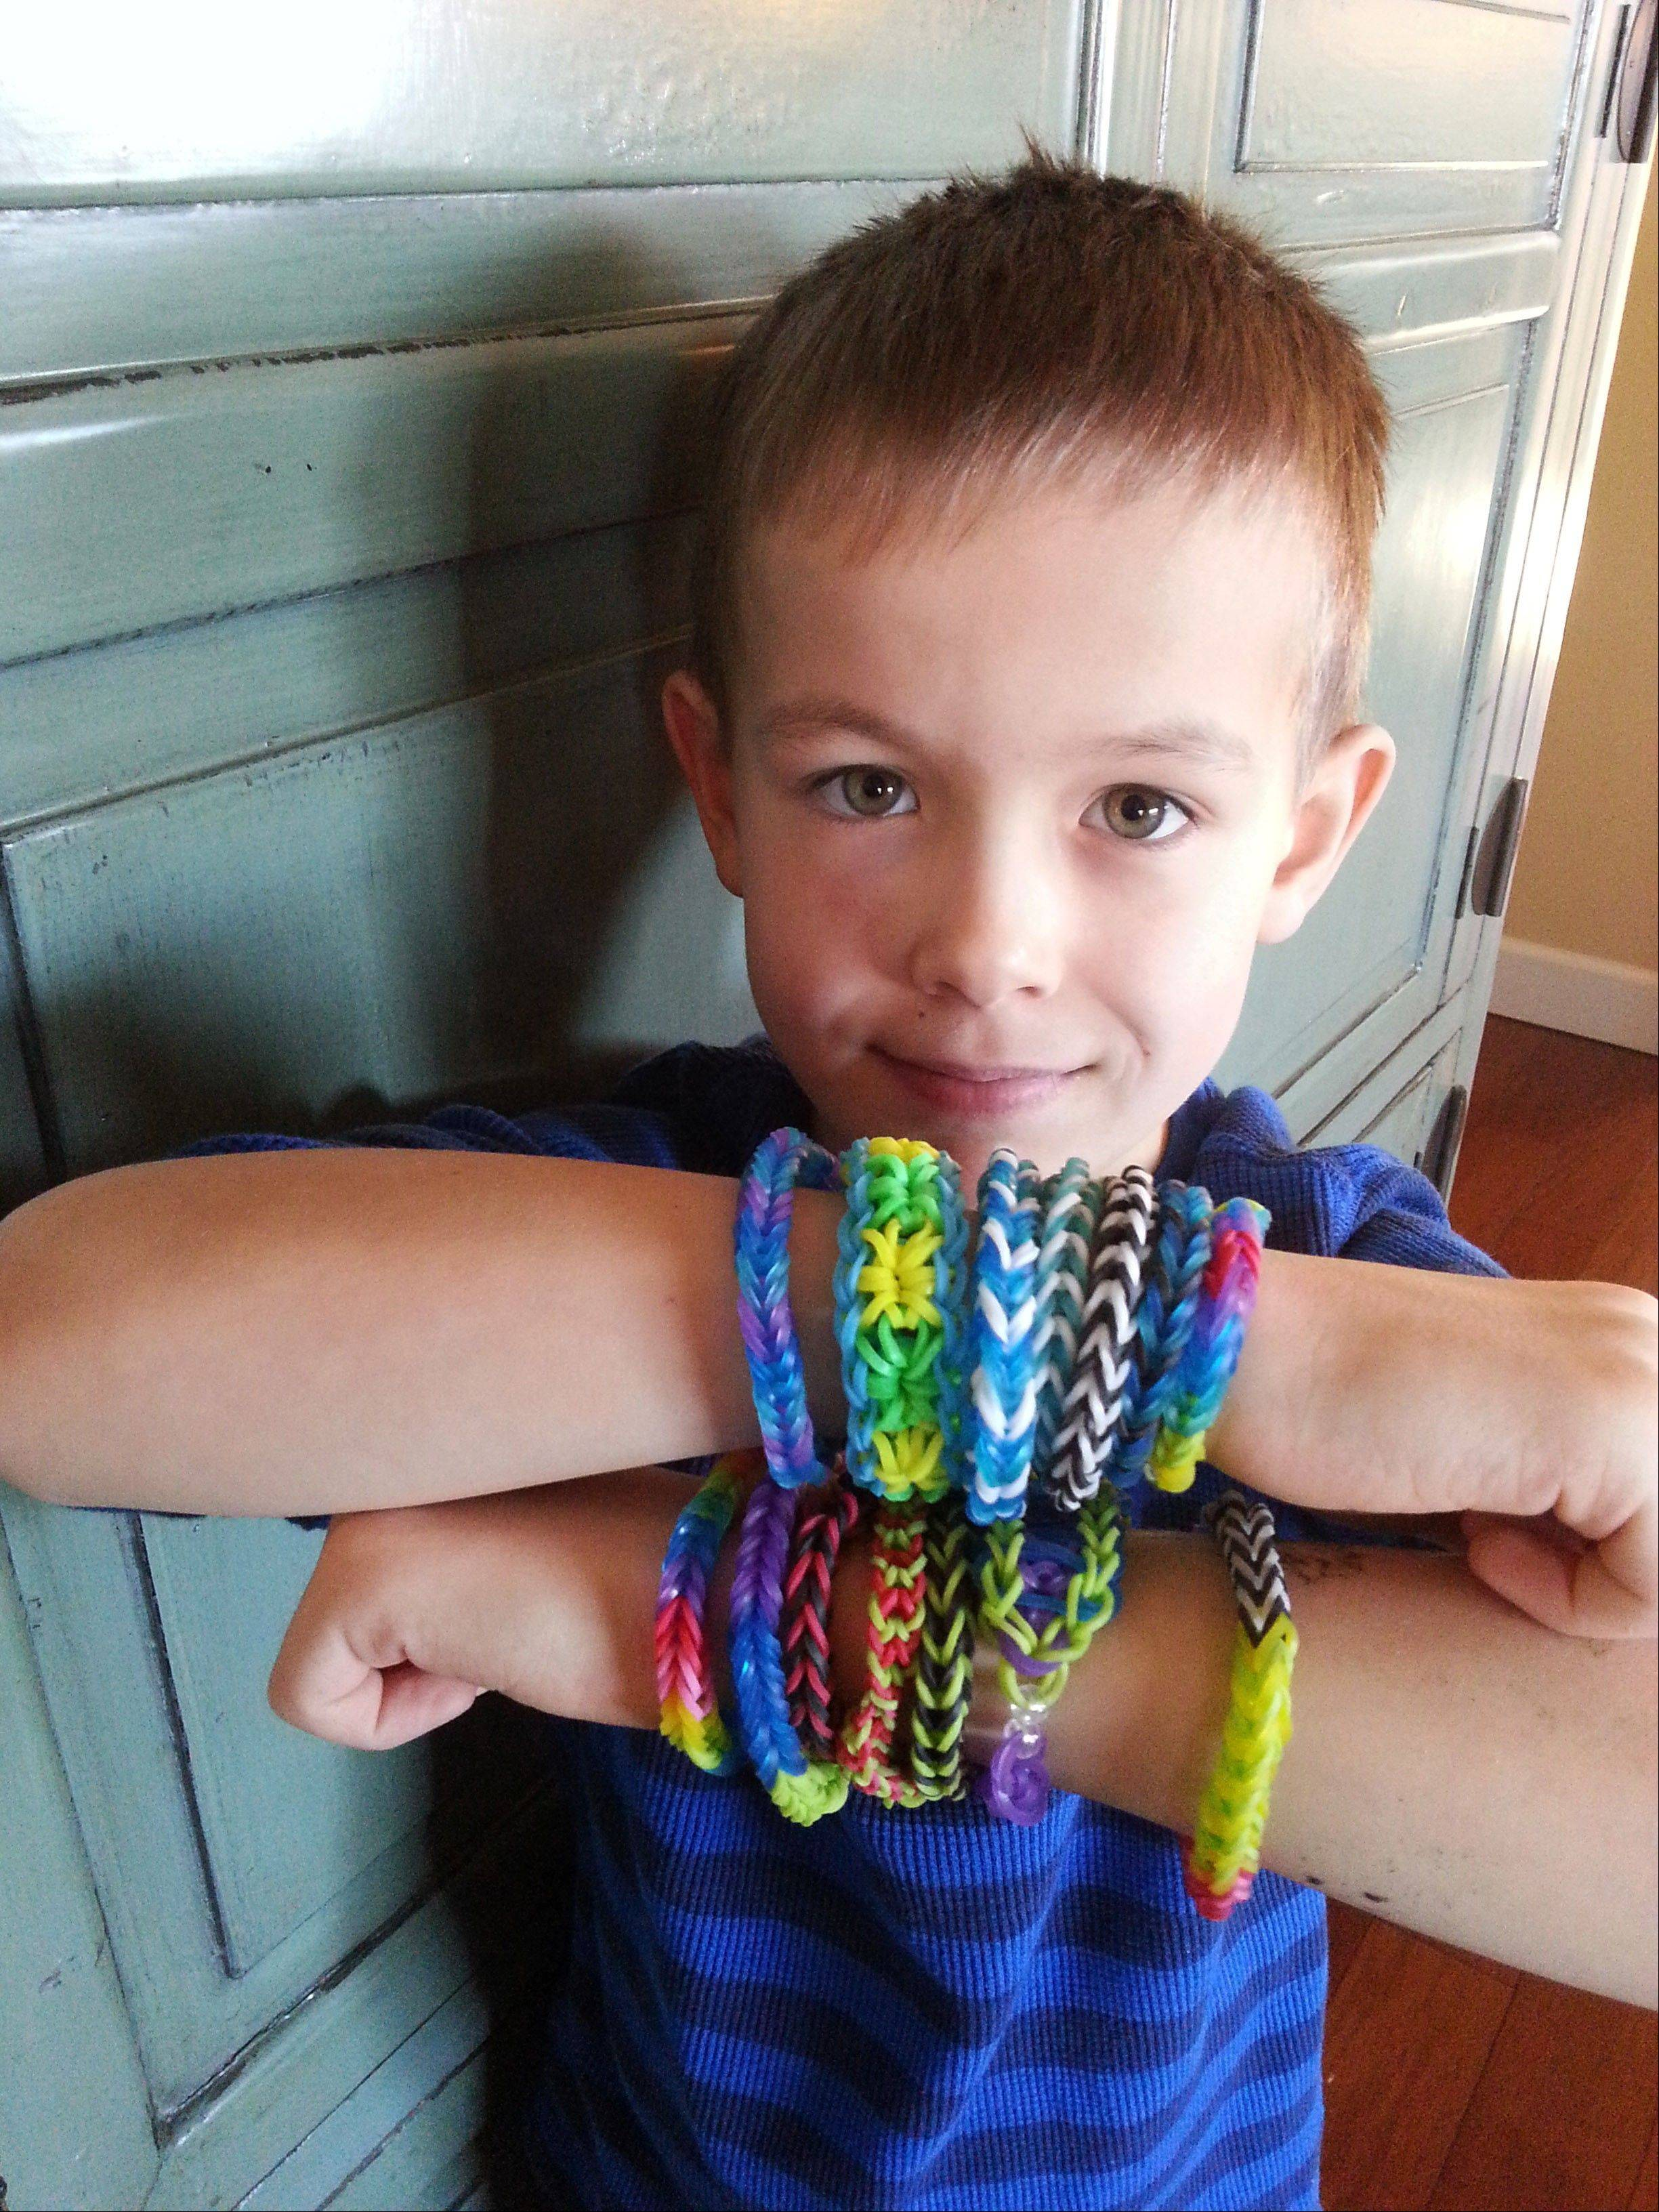 Rainbow Loom bracelet making kits and supplies remain a popular gift choice for children, according to John Flanagan, owner of Learning Express in Geneva Commons.